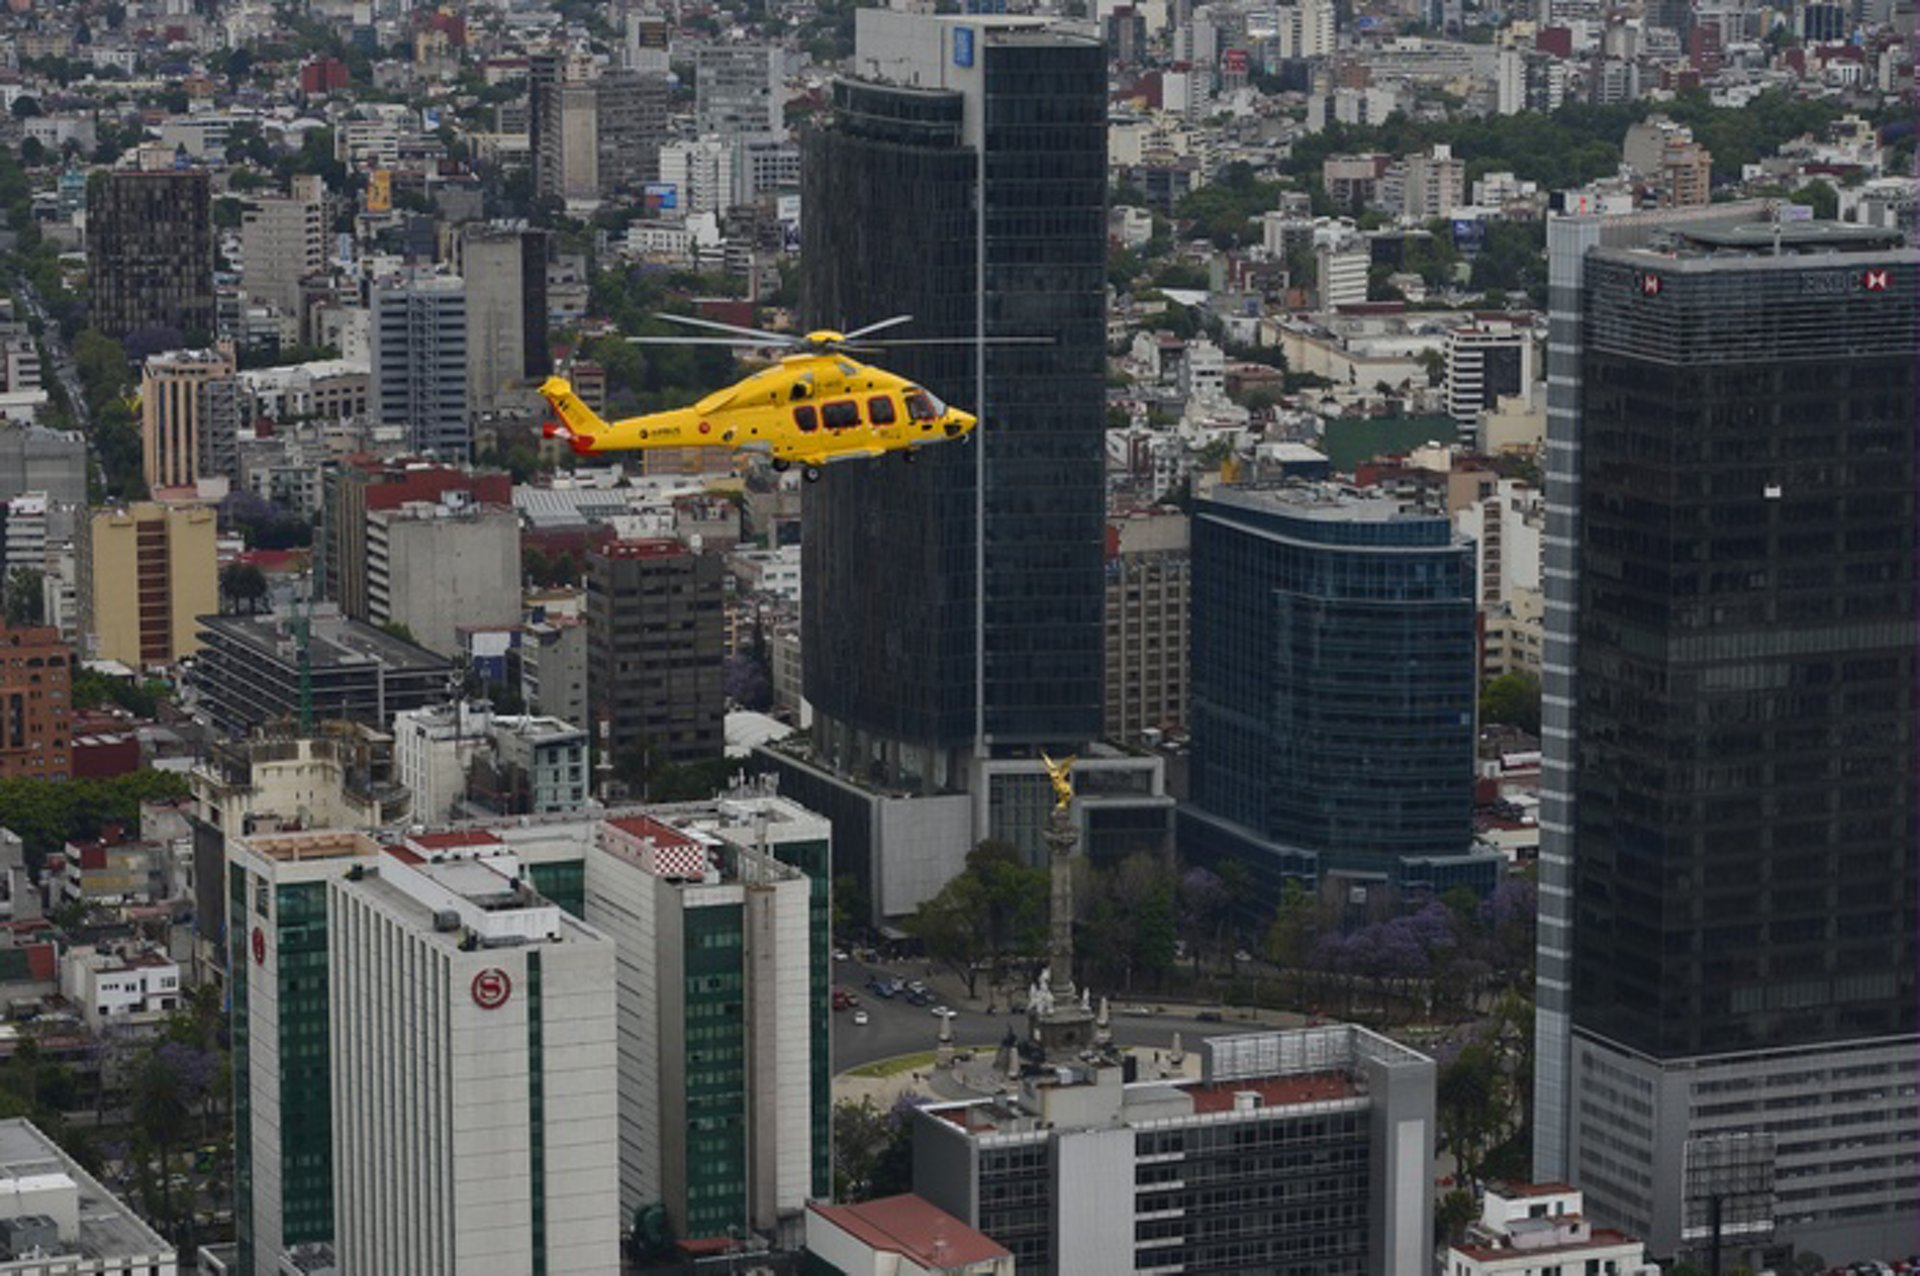 The H175 tours Mexico, the US and Brazil for oil & gas and private customers